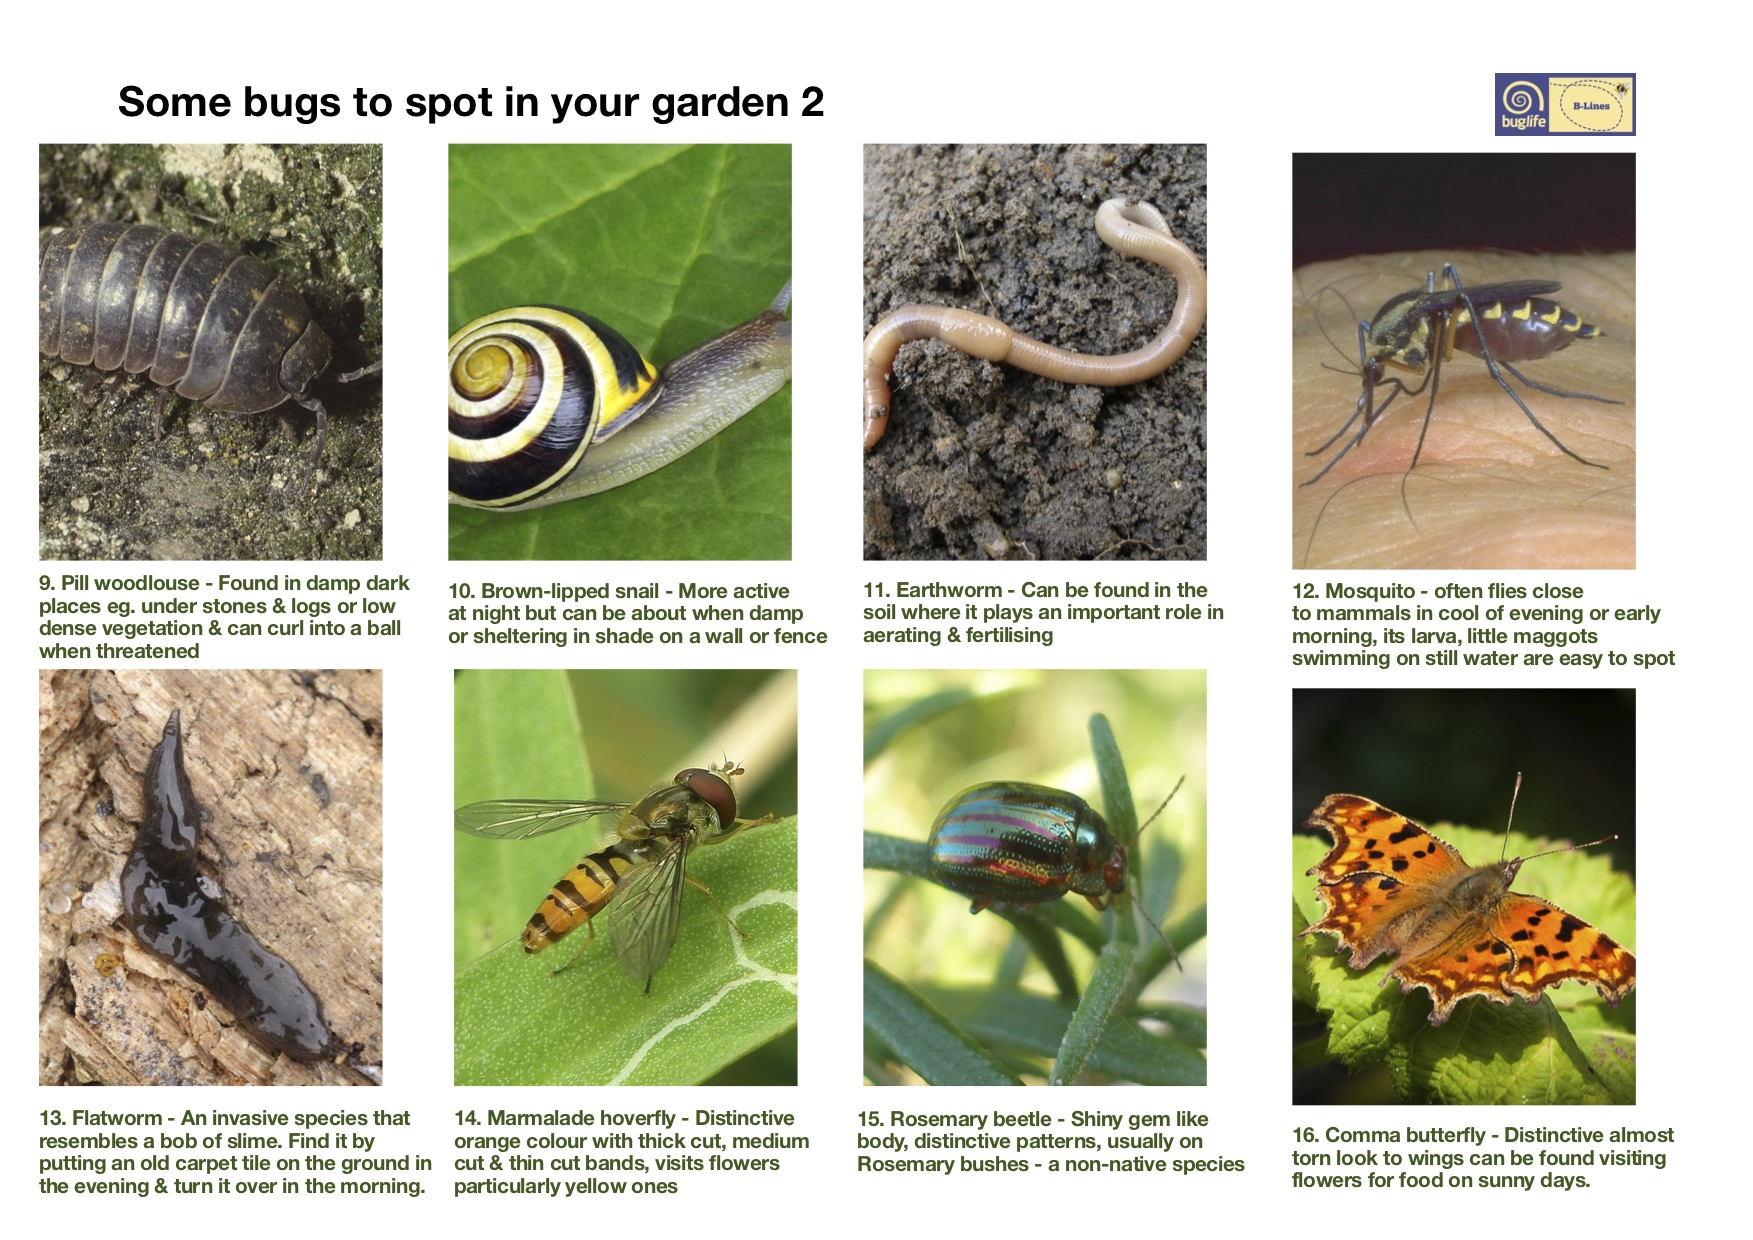 Find your local bugs: Bug poster page 2